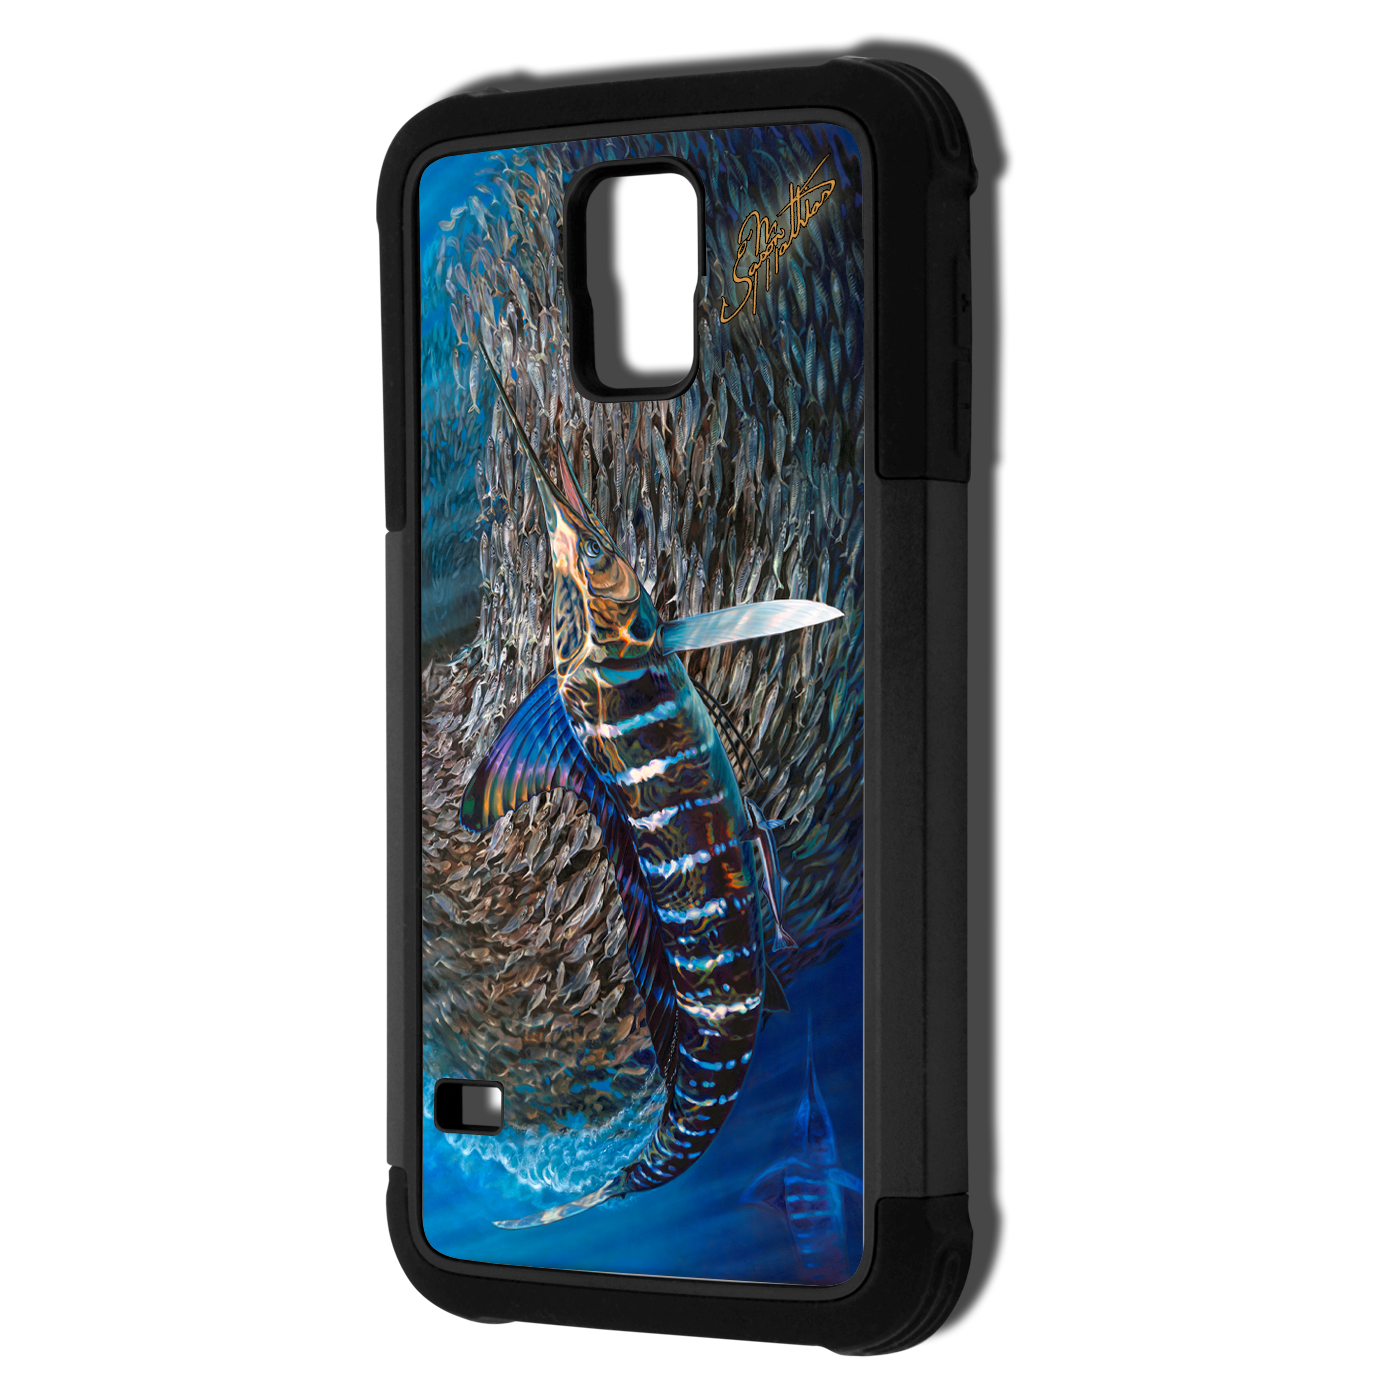 samsung-galaxy-s5-striped-marlin.png